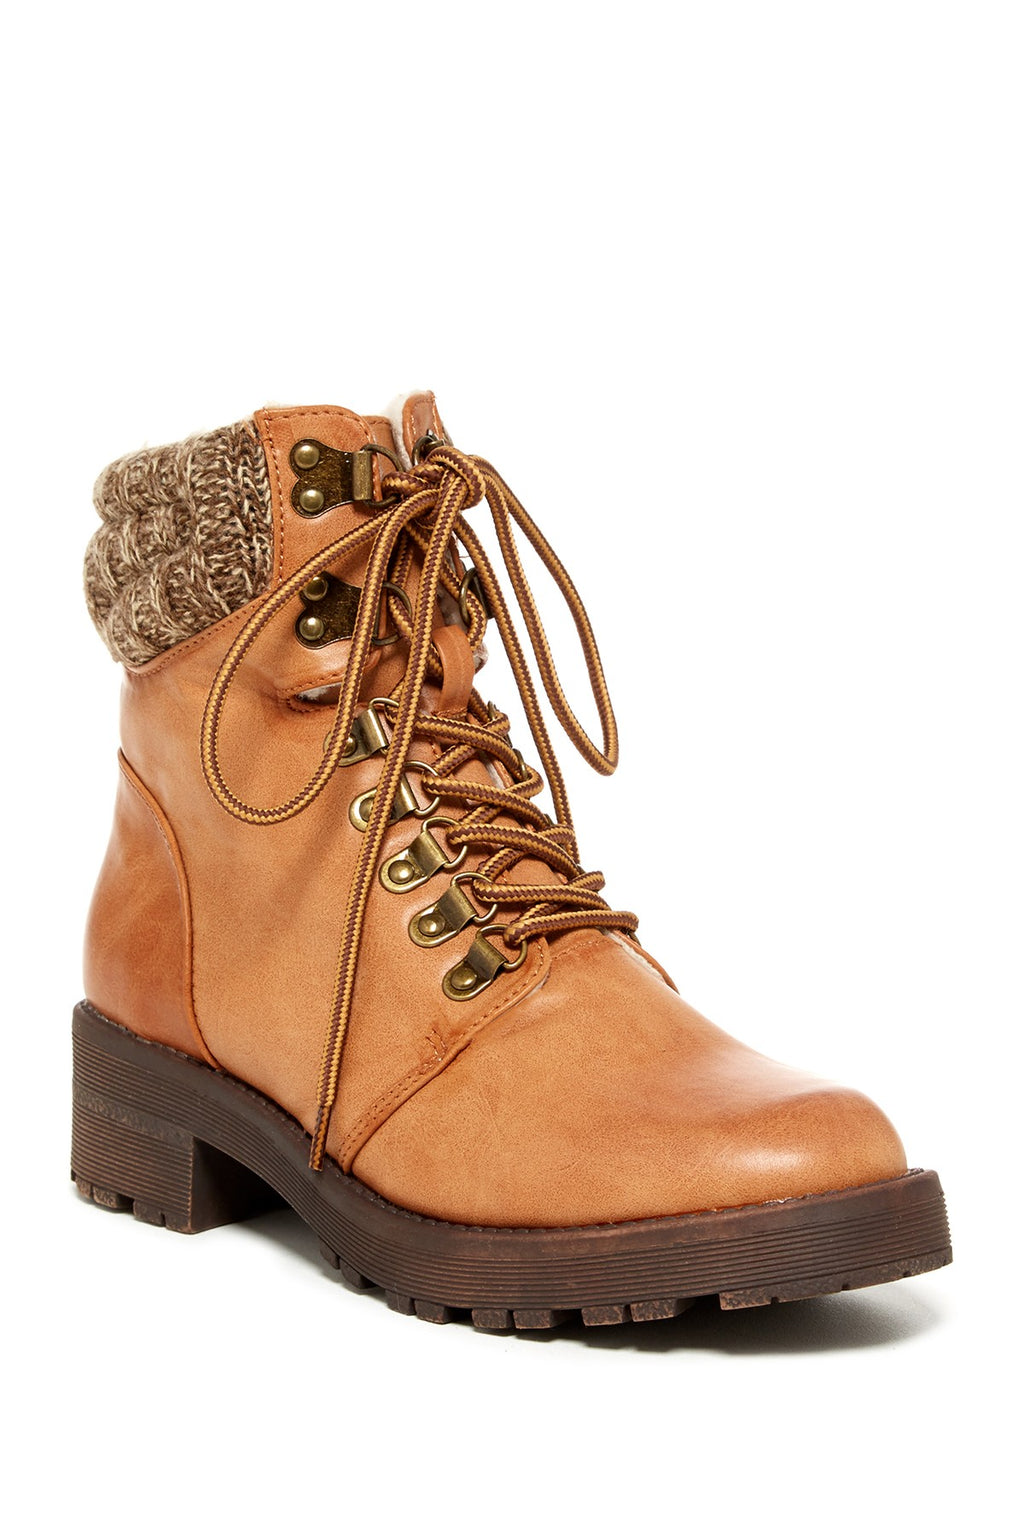 MIA Maylynn Lace Up Boots